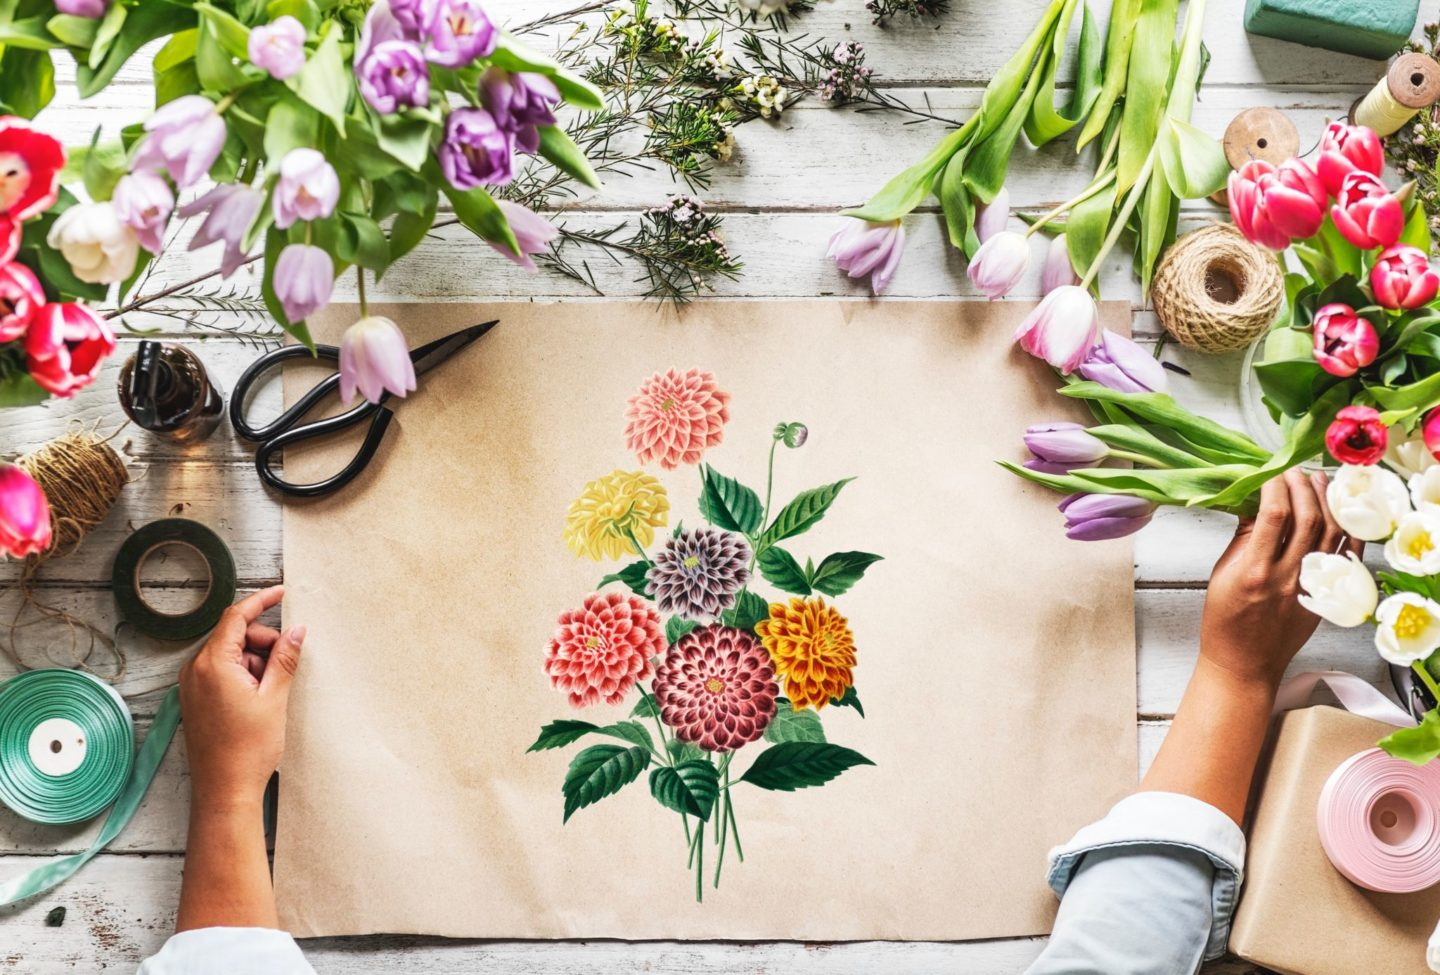 A flower arts and craft idea for a girls night.